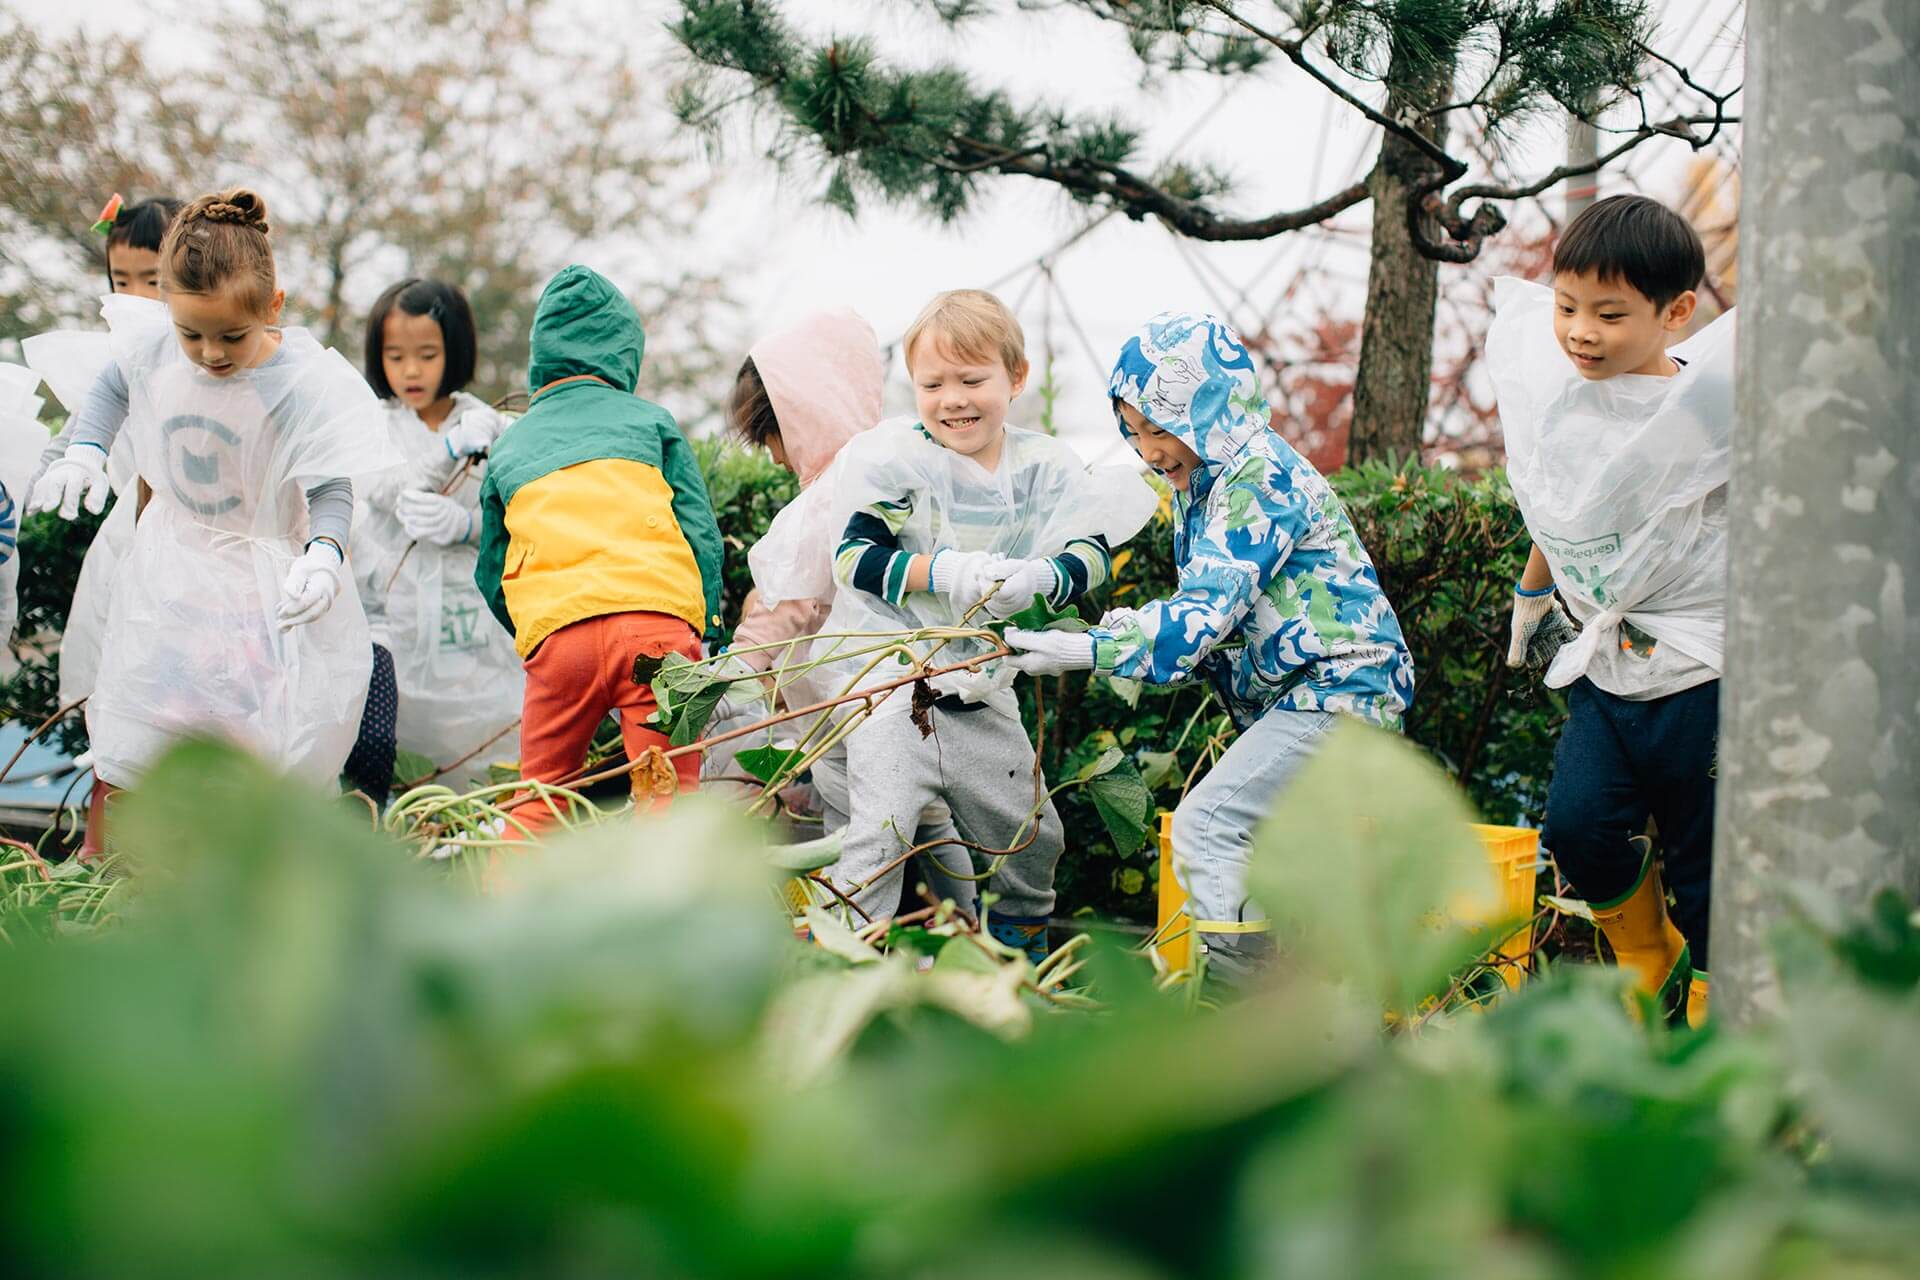 Elementary School Students Pick Potatoes from the Garden